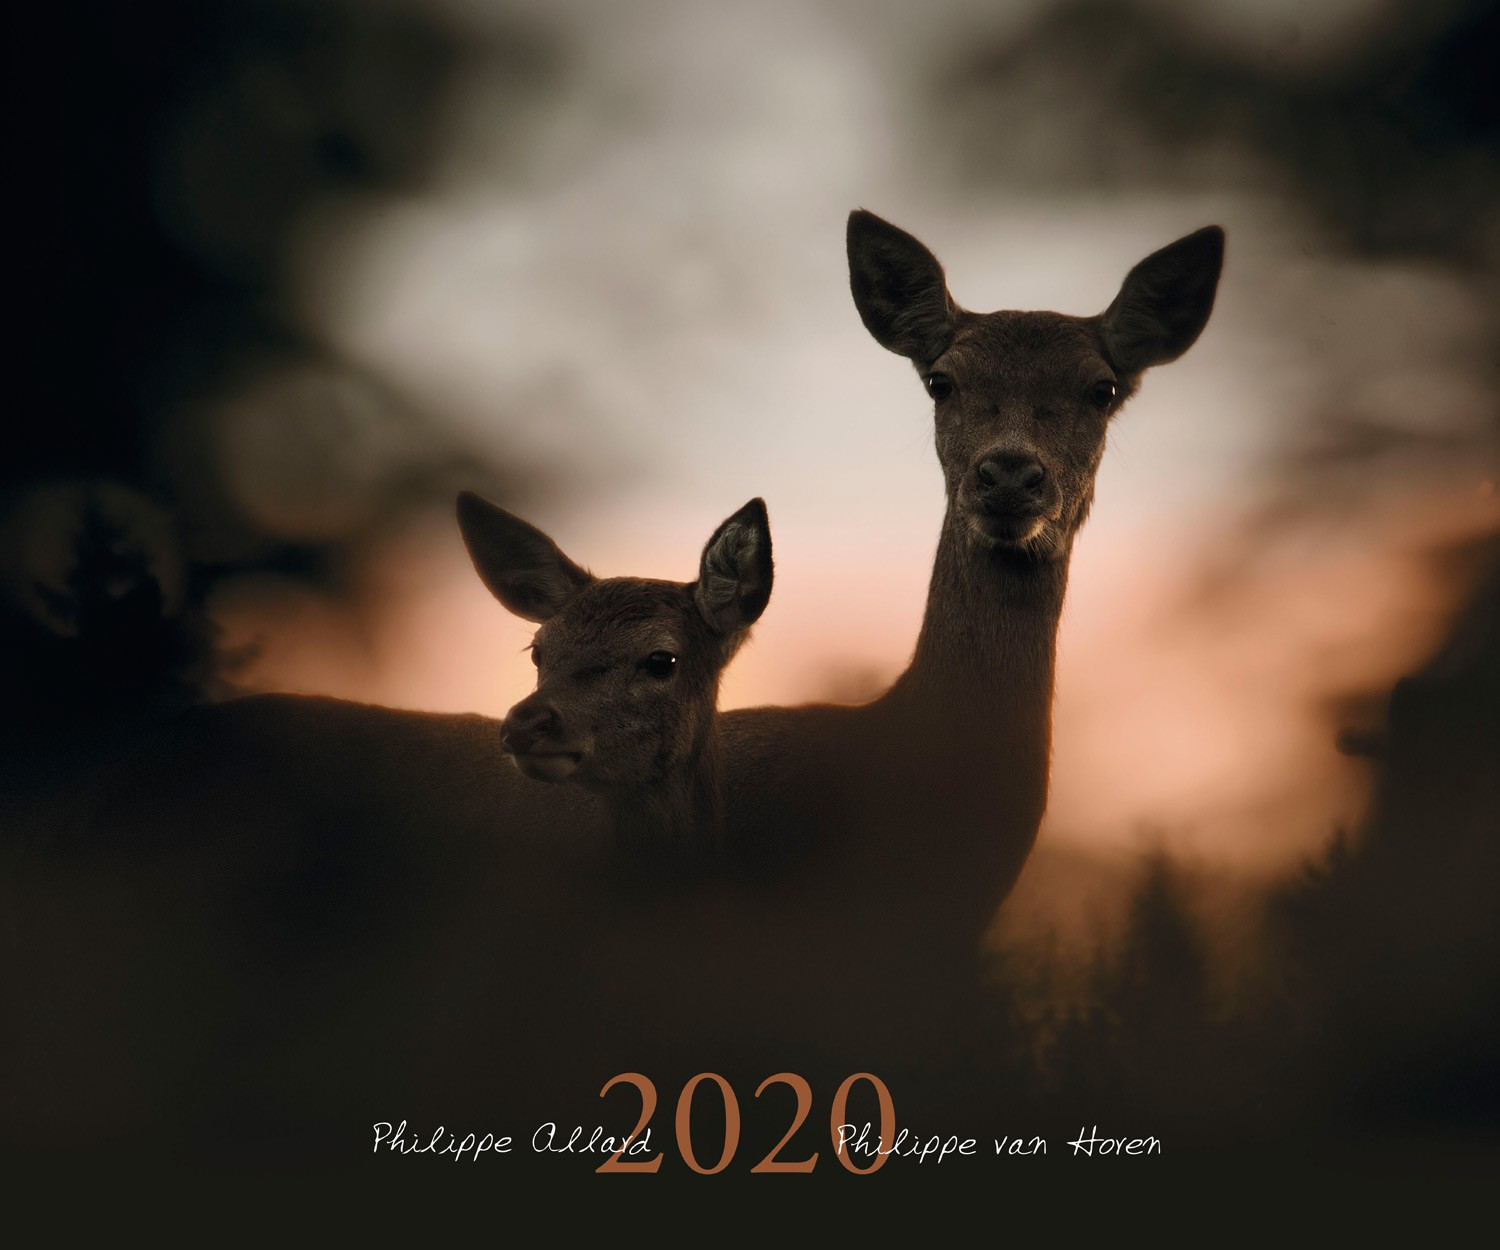 Calendrier animalier 2020, made in chasse - equipements d...